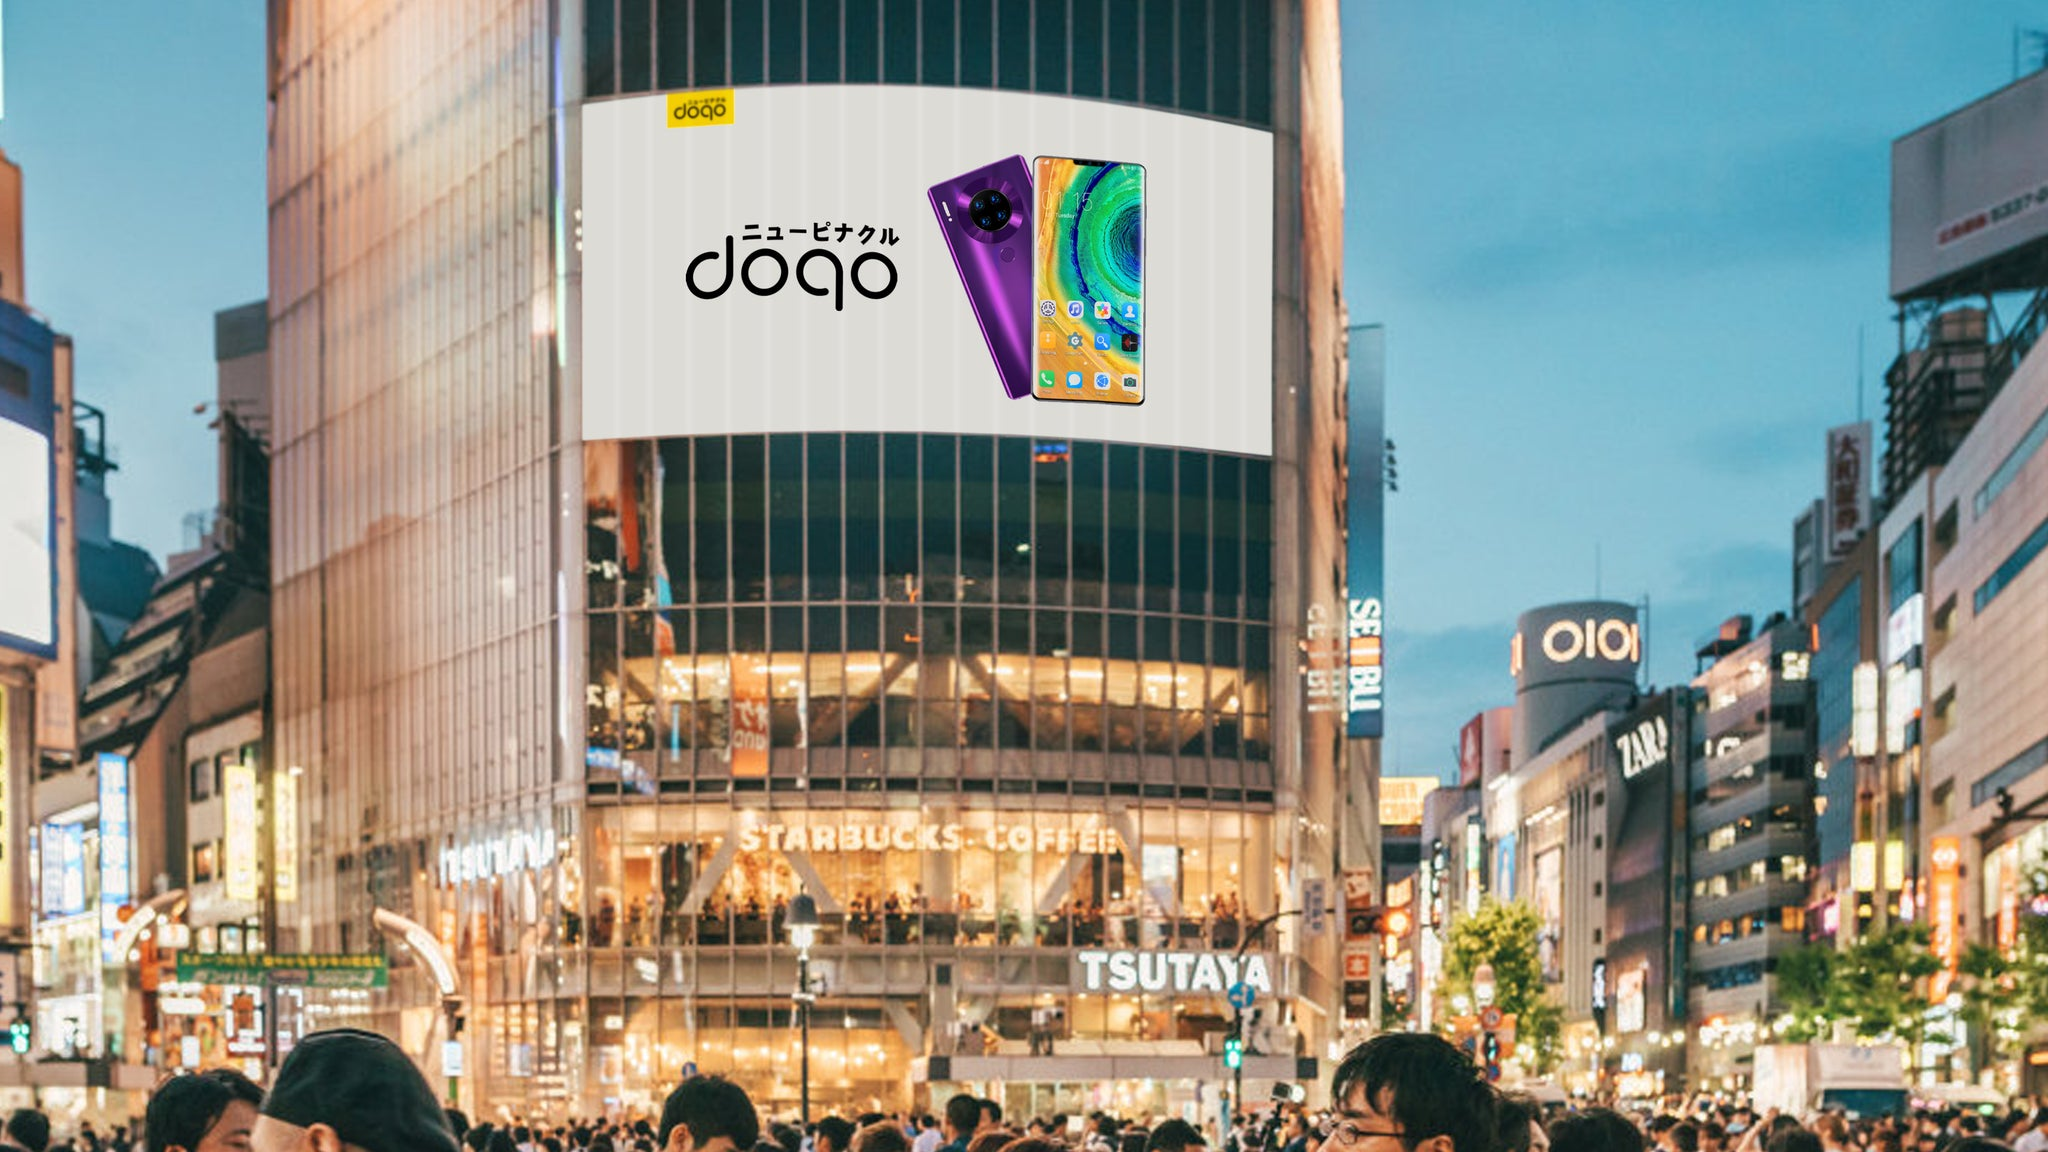 Japanese doqo mobile phone, Cambodia is the first stop in Southeast Asia market